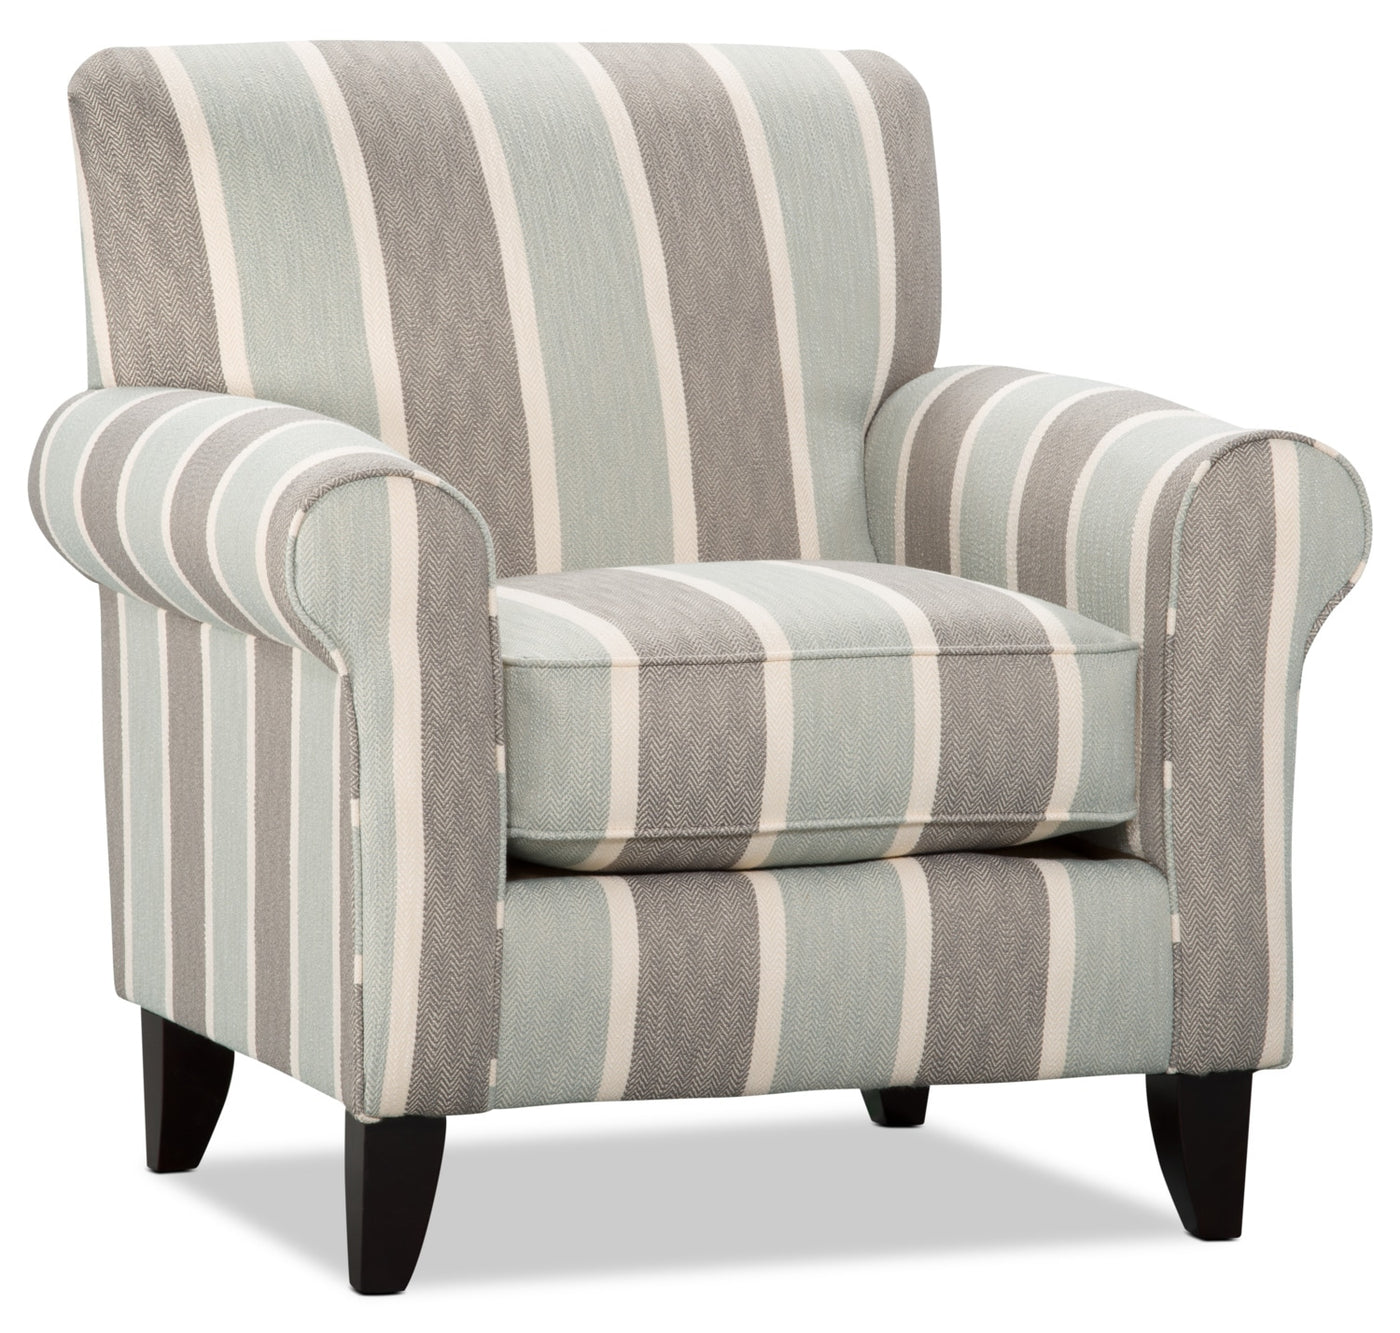 Prime Tula Fabric Accent Chair Beach Mist Gamerscity Chair Design For Home Gamerscityorg